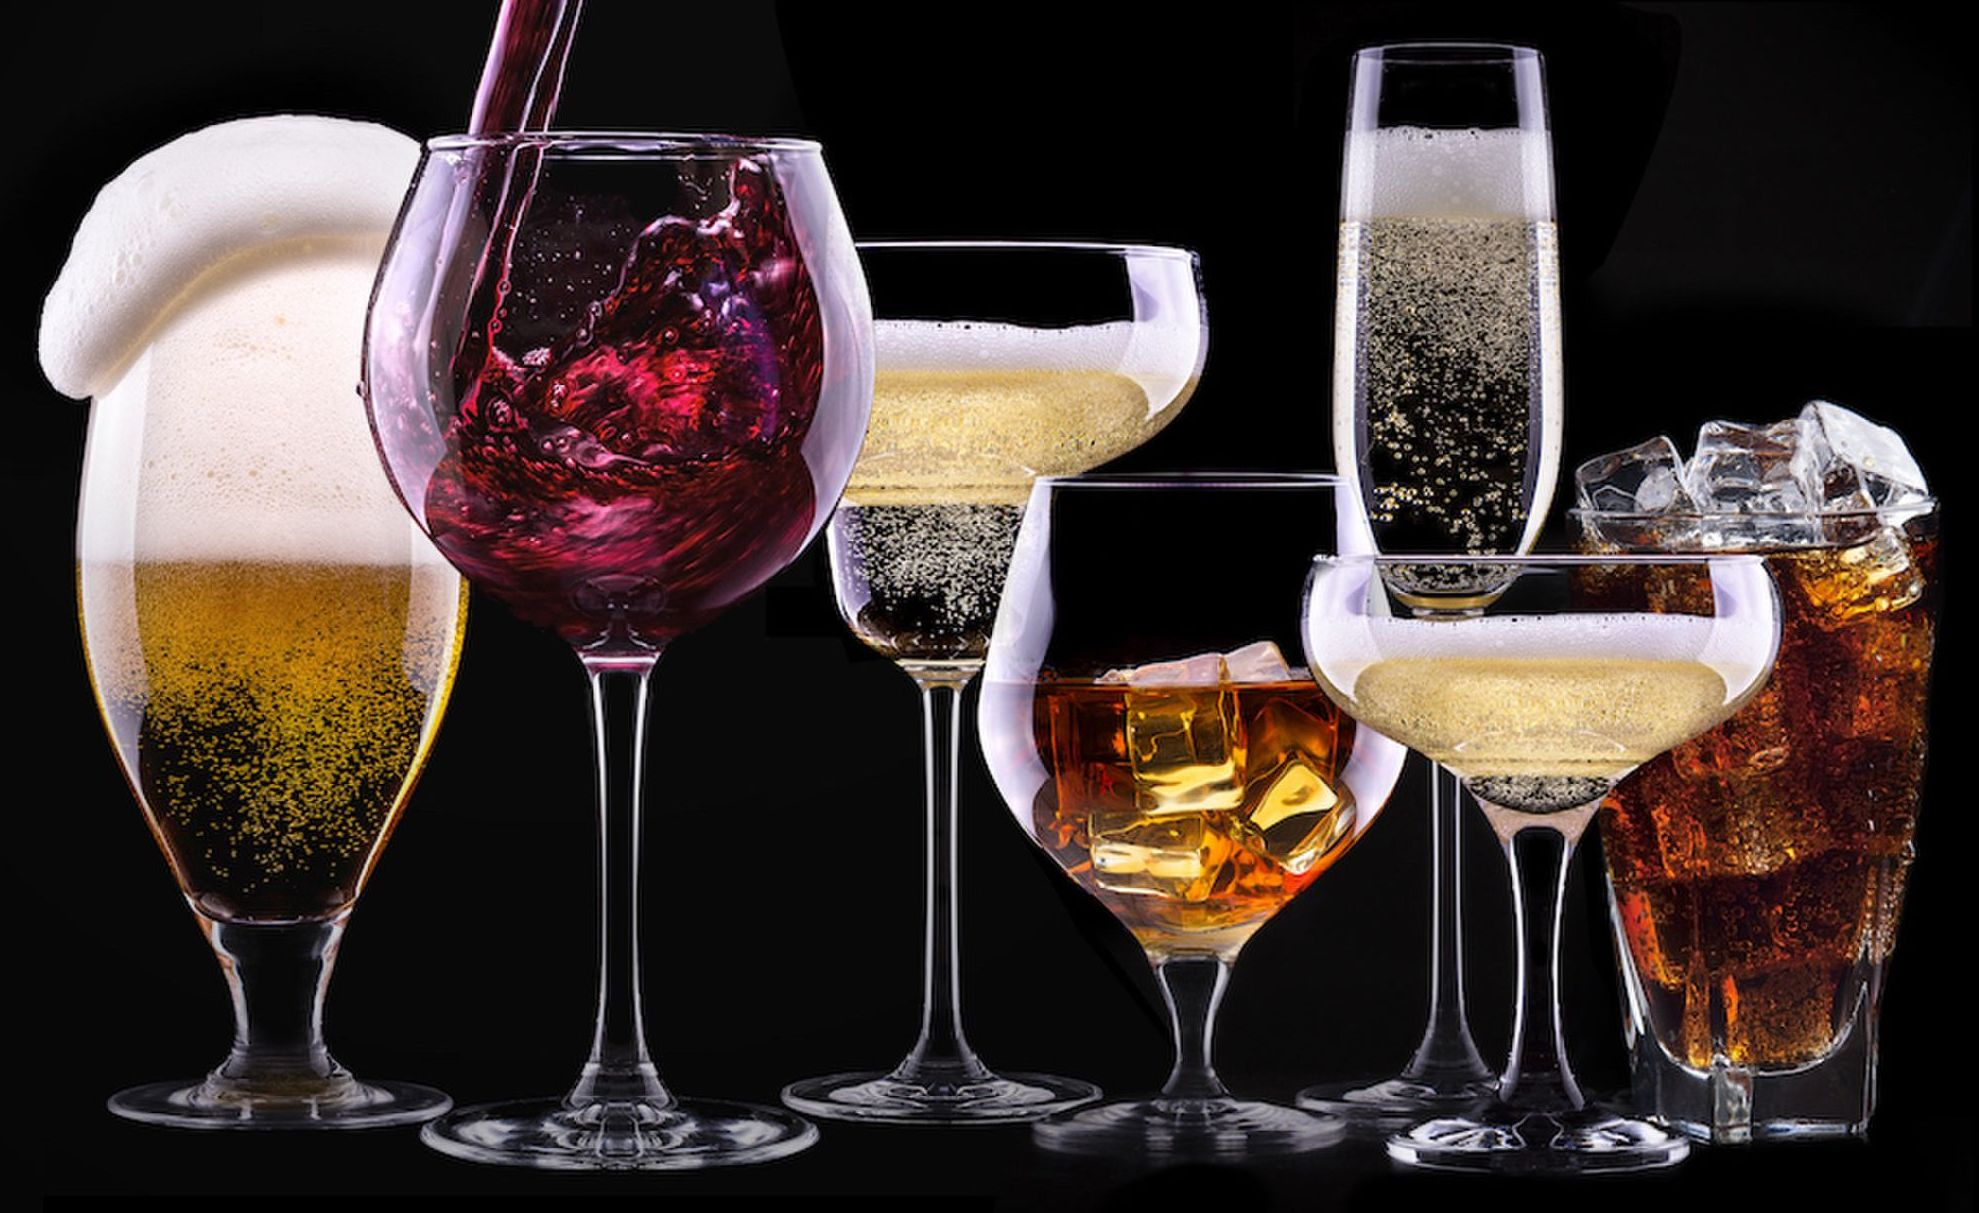 Scientists have discovered how different types of alcohol affect emotions